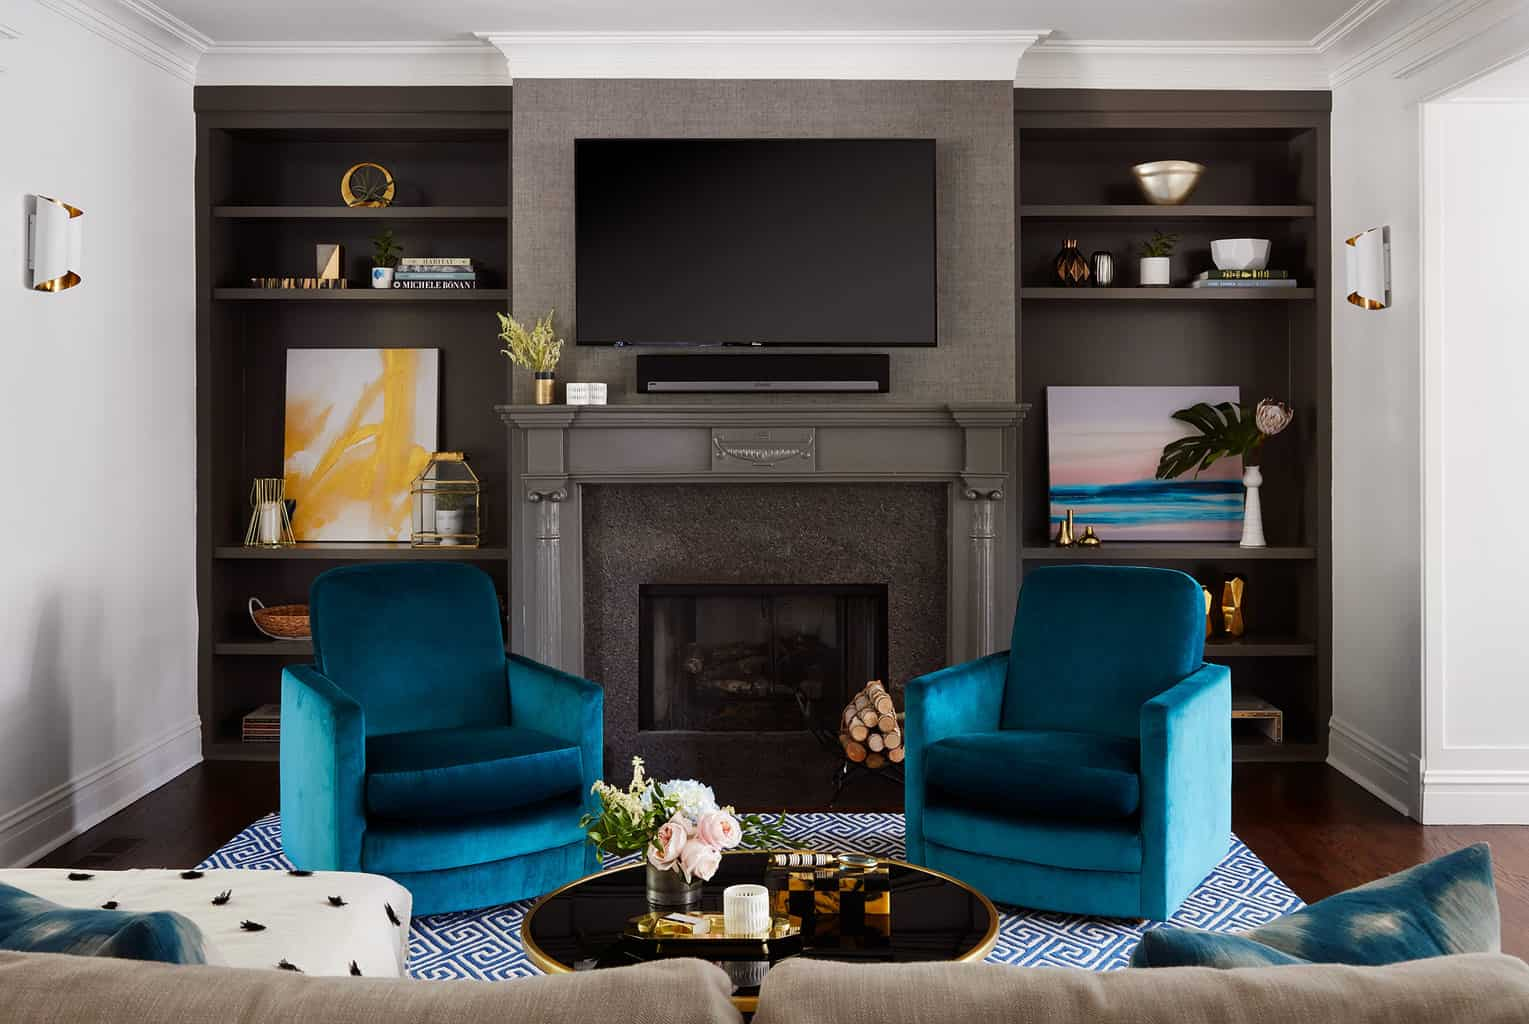 decorating-with-teal-velvet-chairs